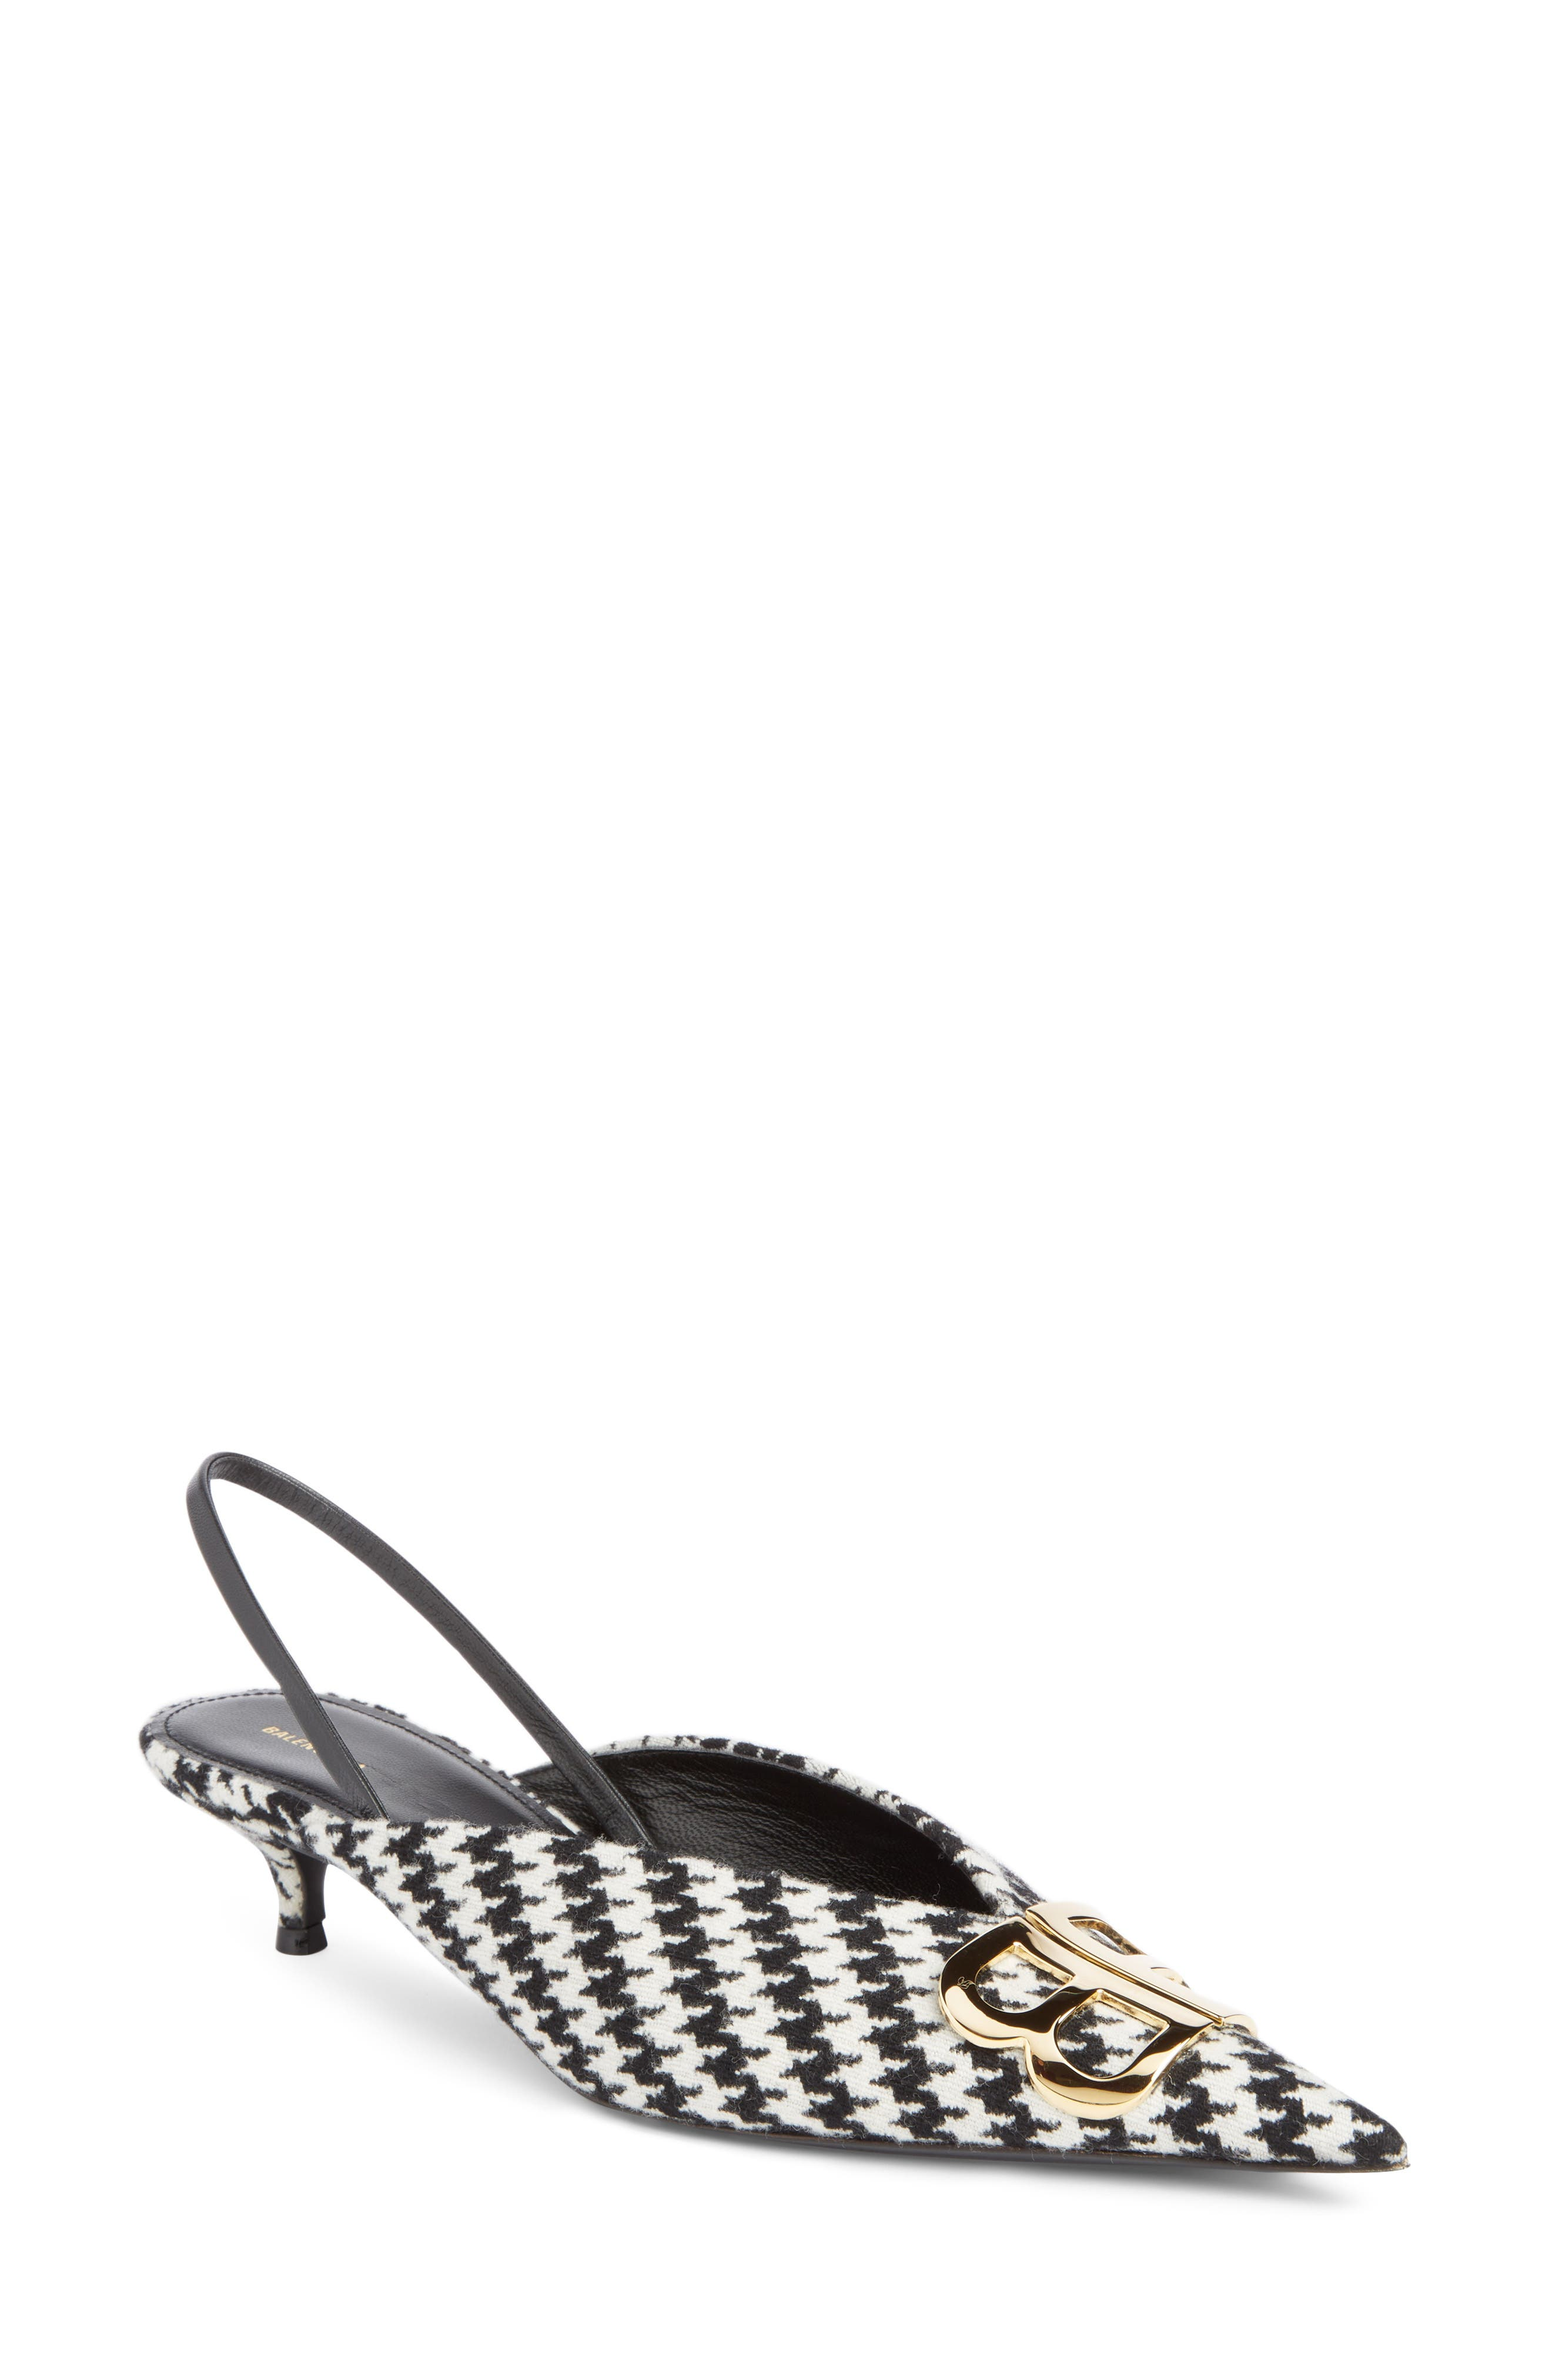 BB Houndstooth Slingback Pump,                         Main,                         color, 121